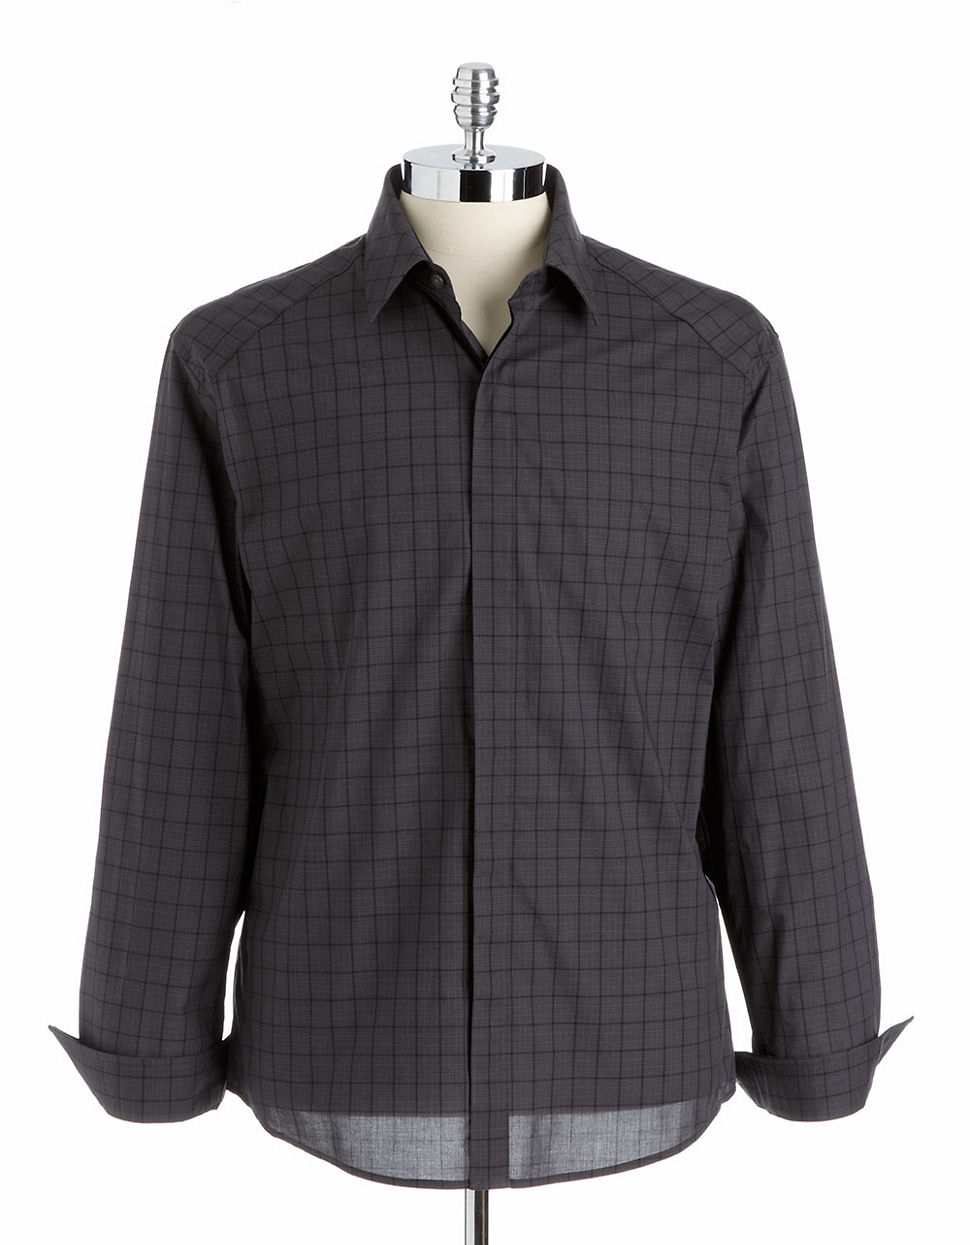 Vince camuto button down dress shirt in gray for men grey for Mens grey button down dress shirt